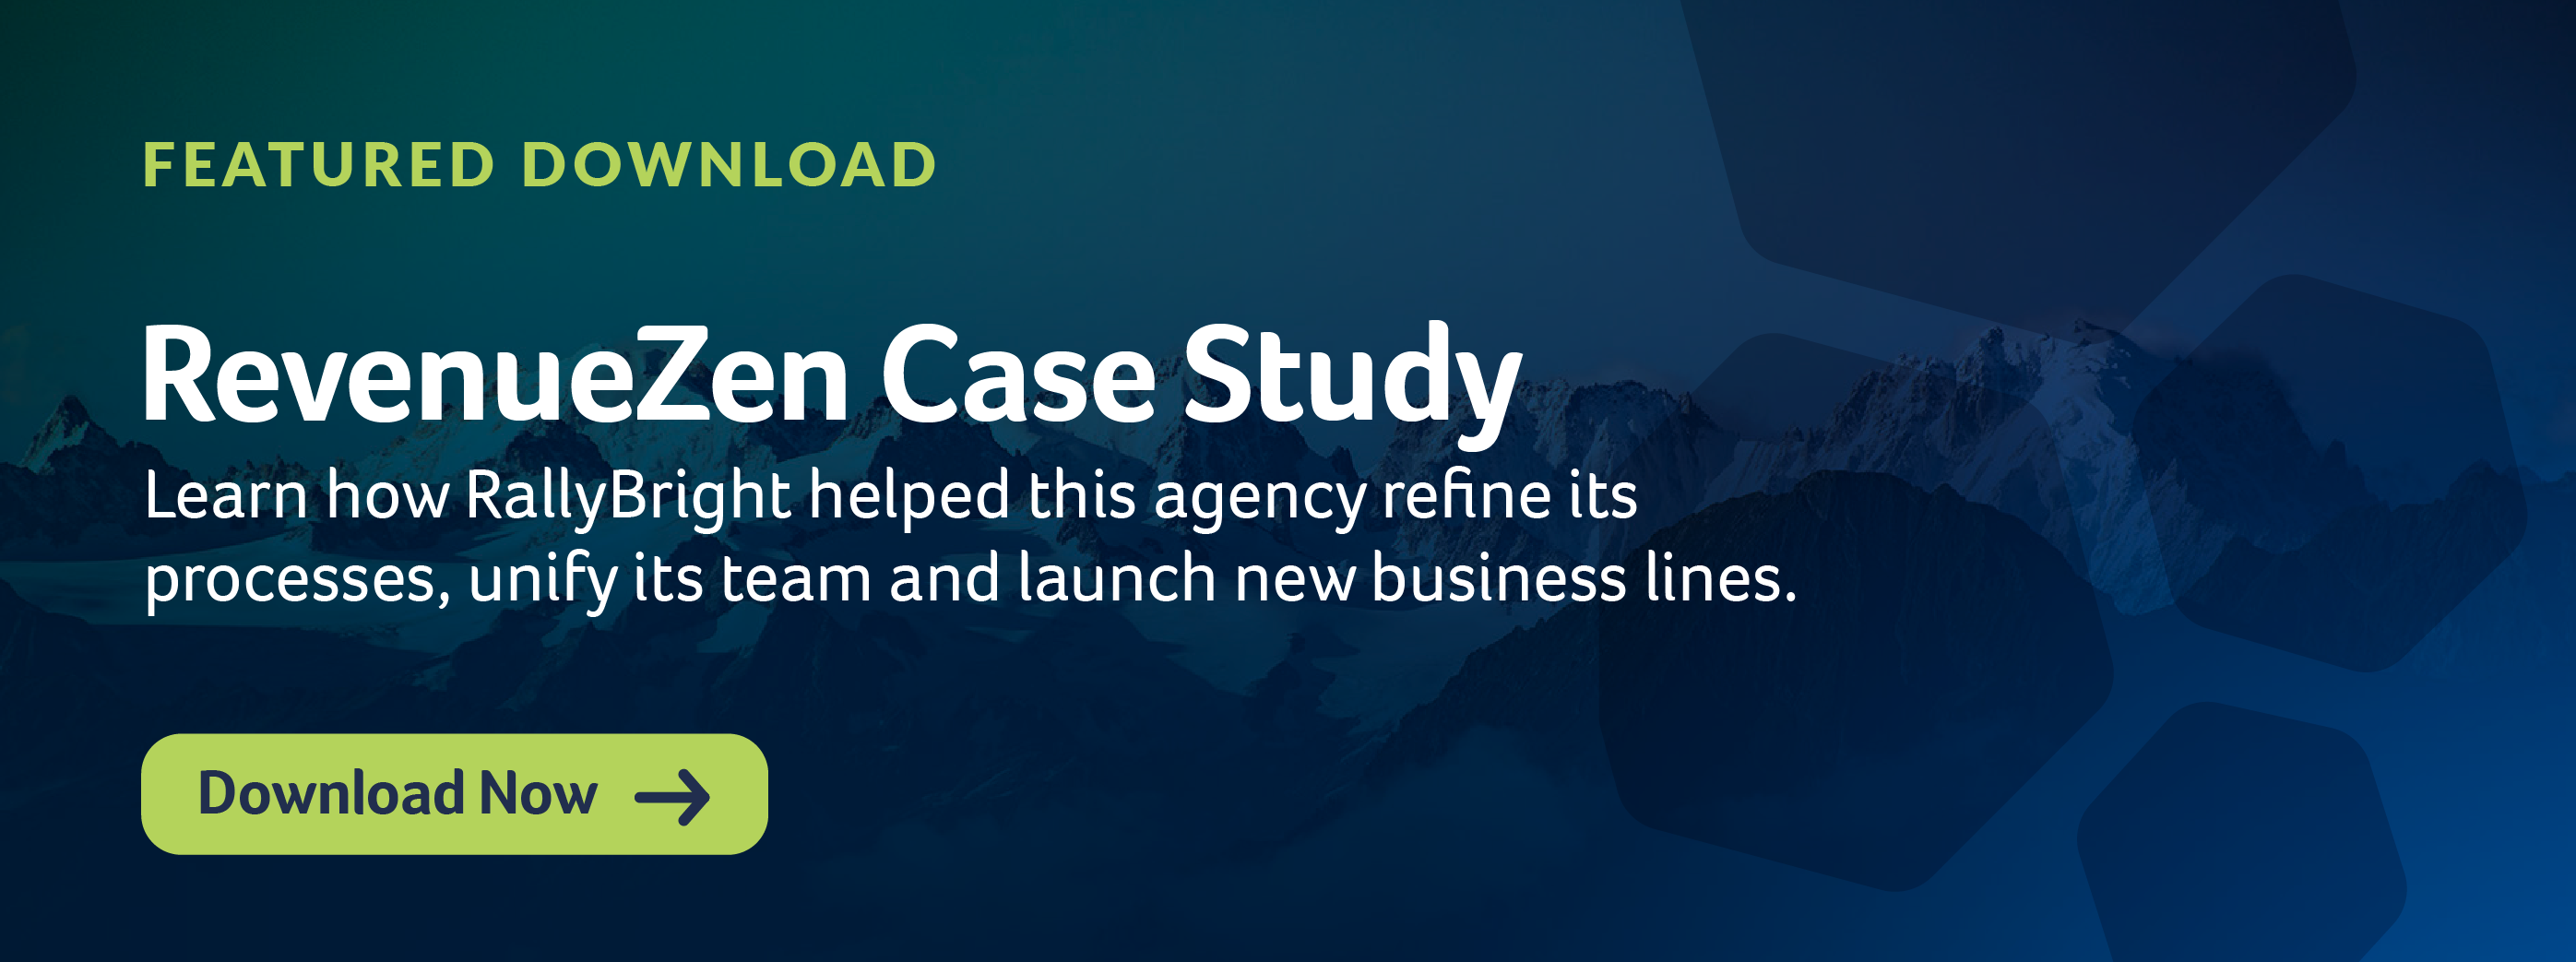 RevenueZen Case Study Download